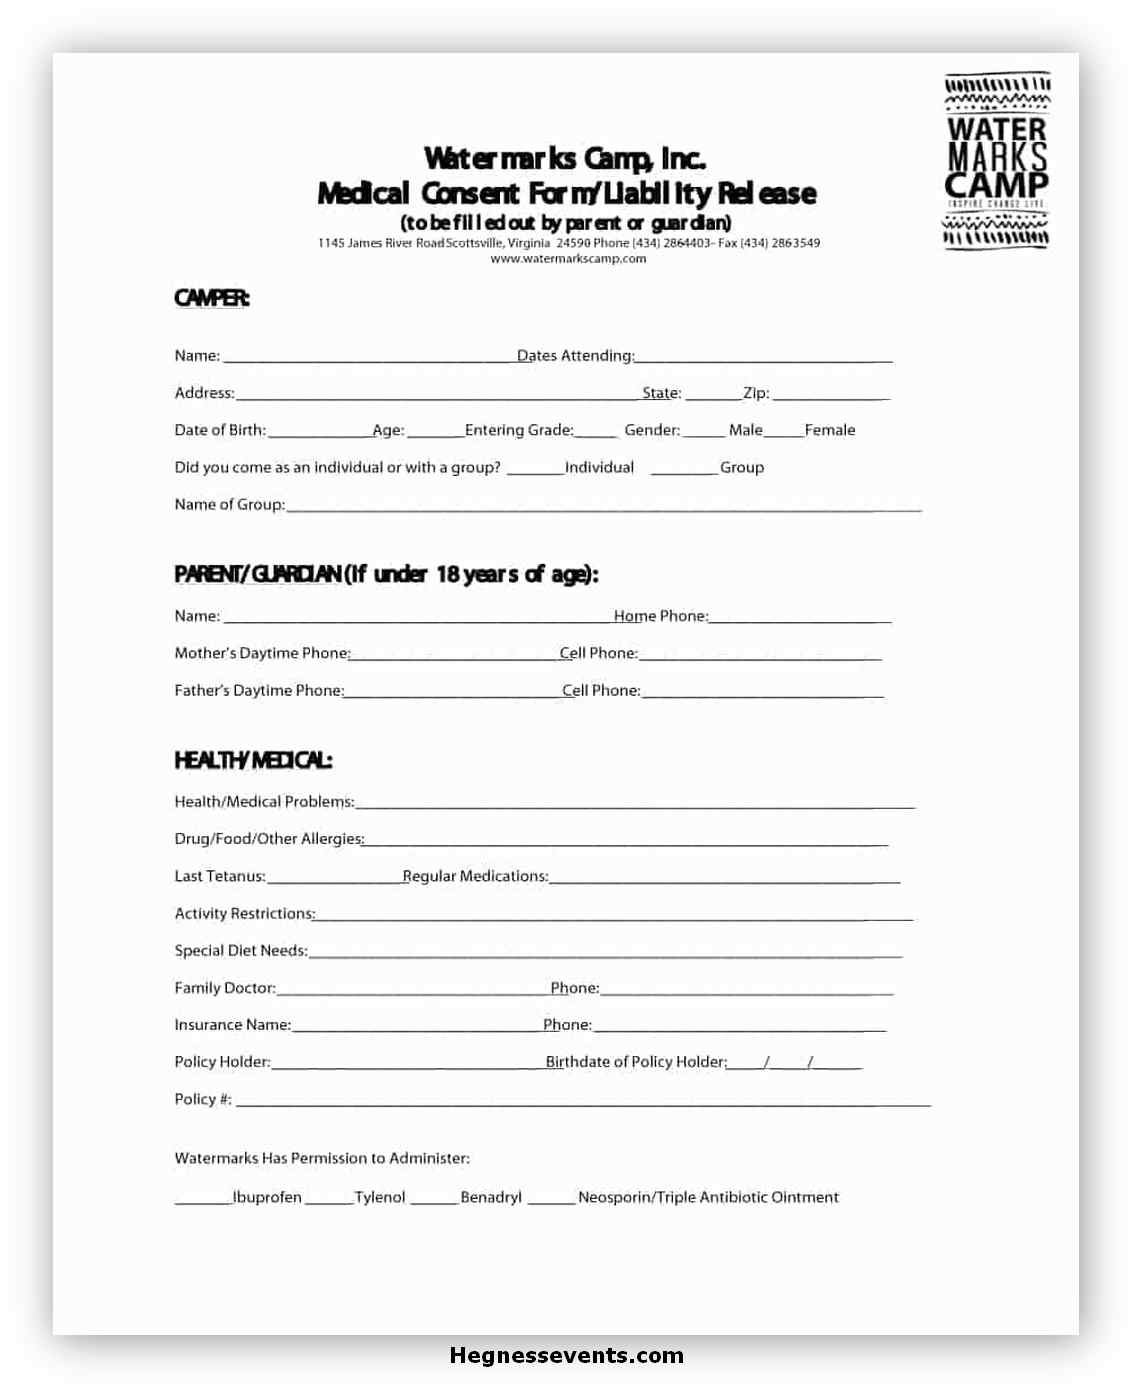 Medical Consent Form Template 13